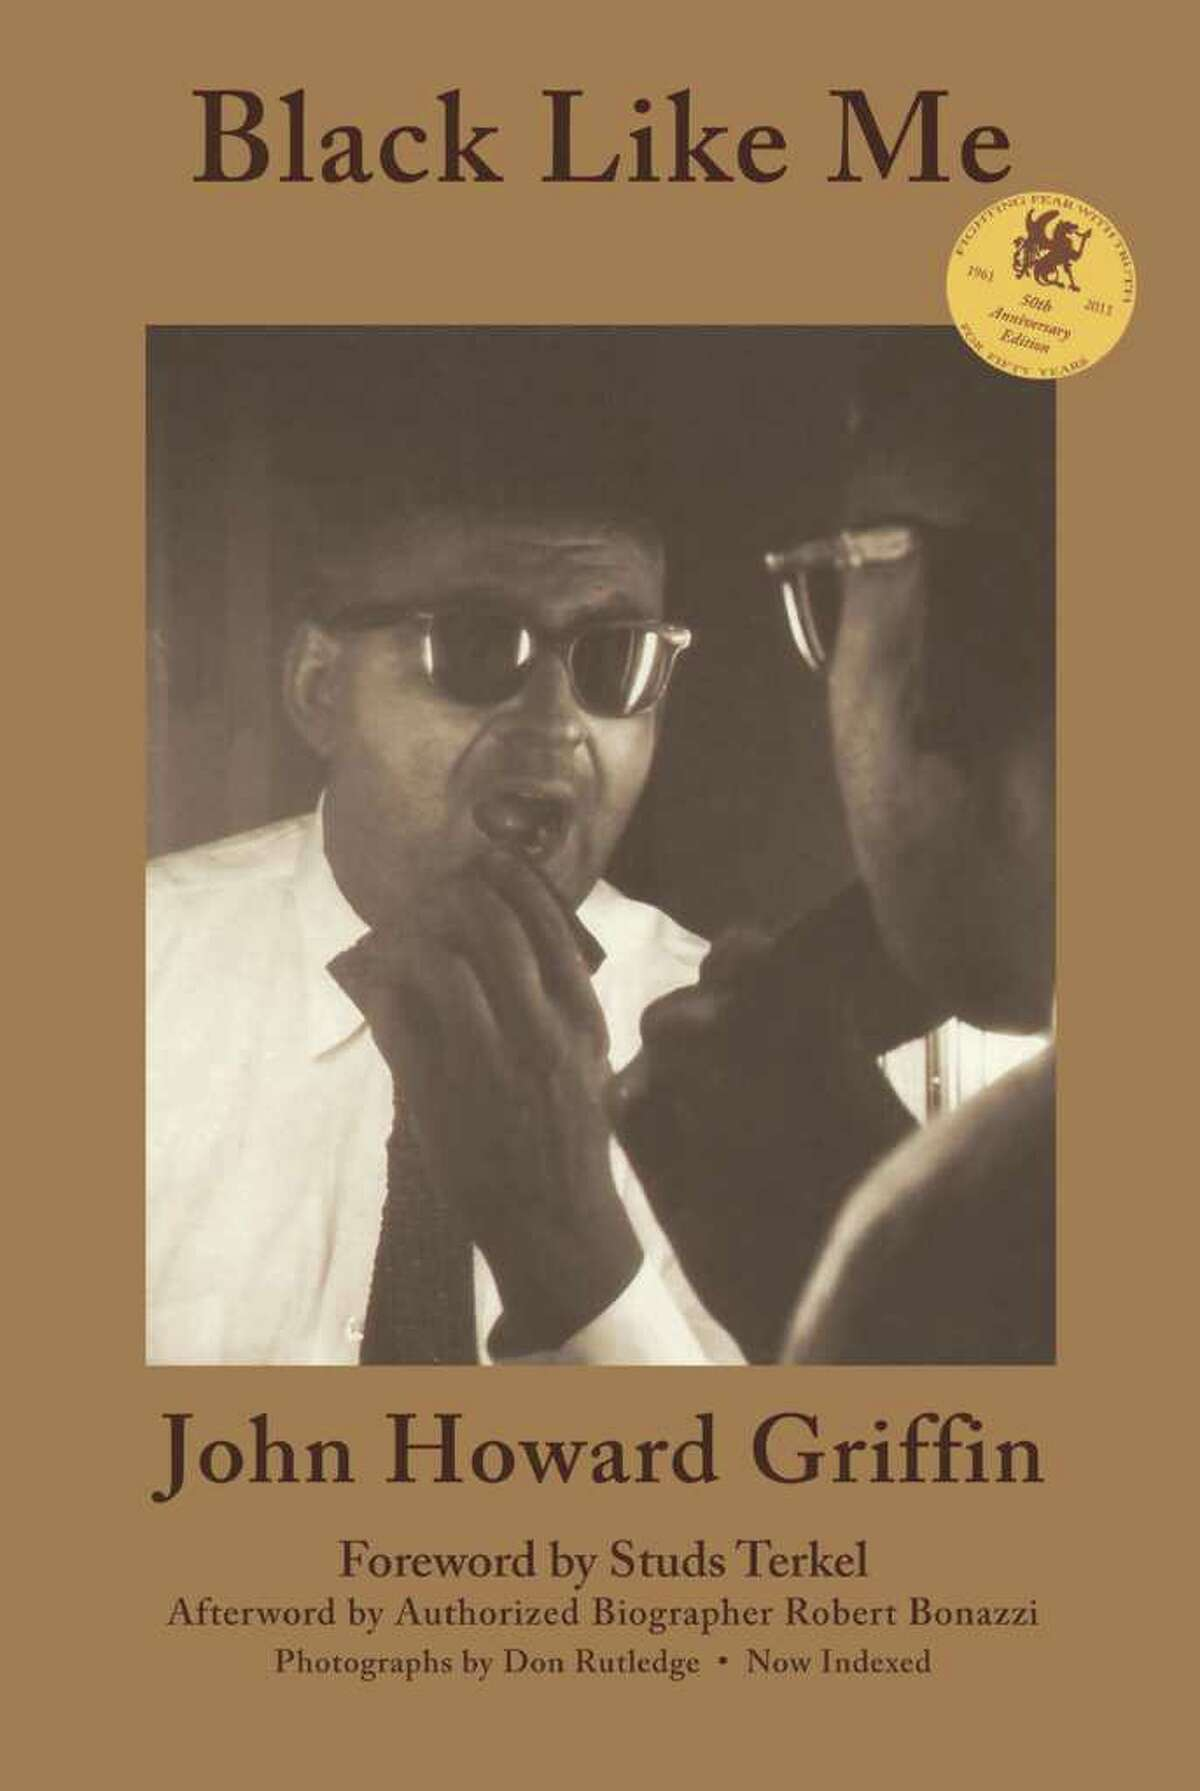 Cover image of 50th anniversary edition of Black Like Me, by John Howard Griffin